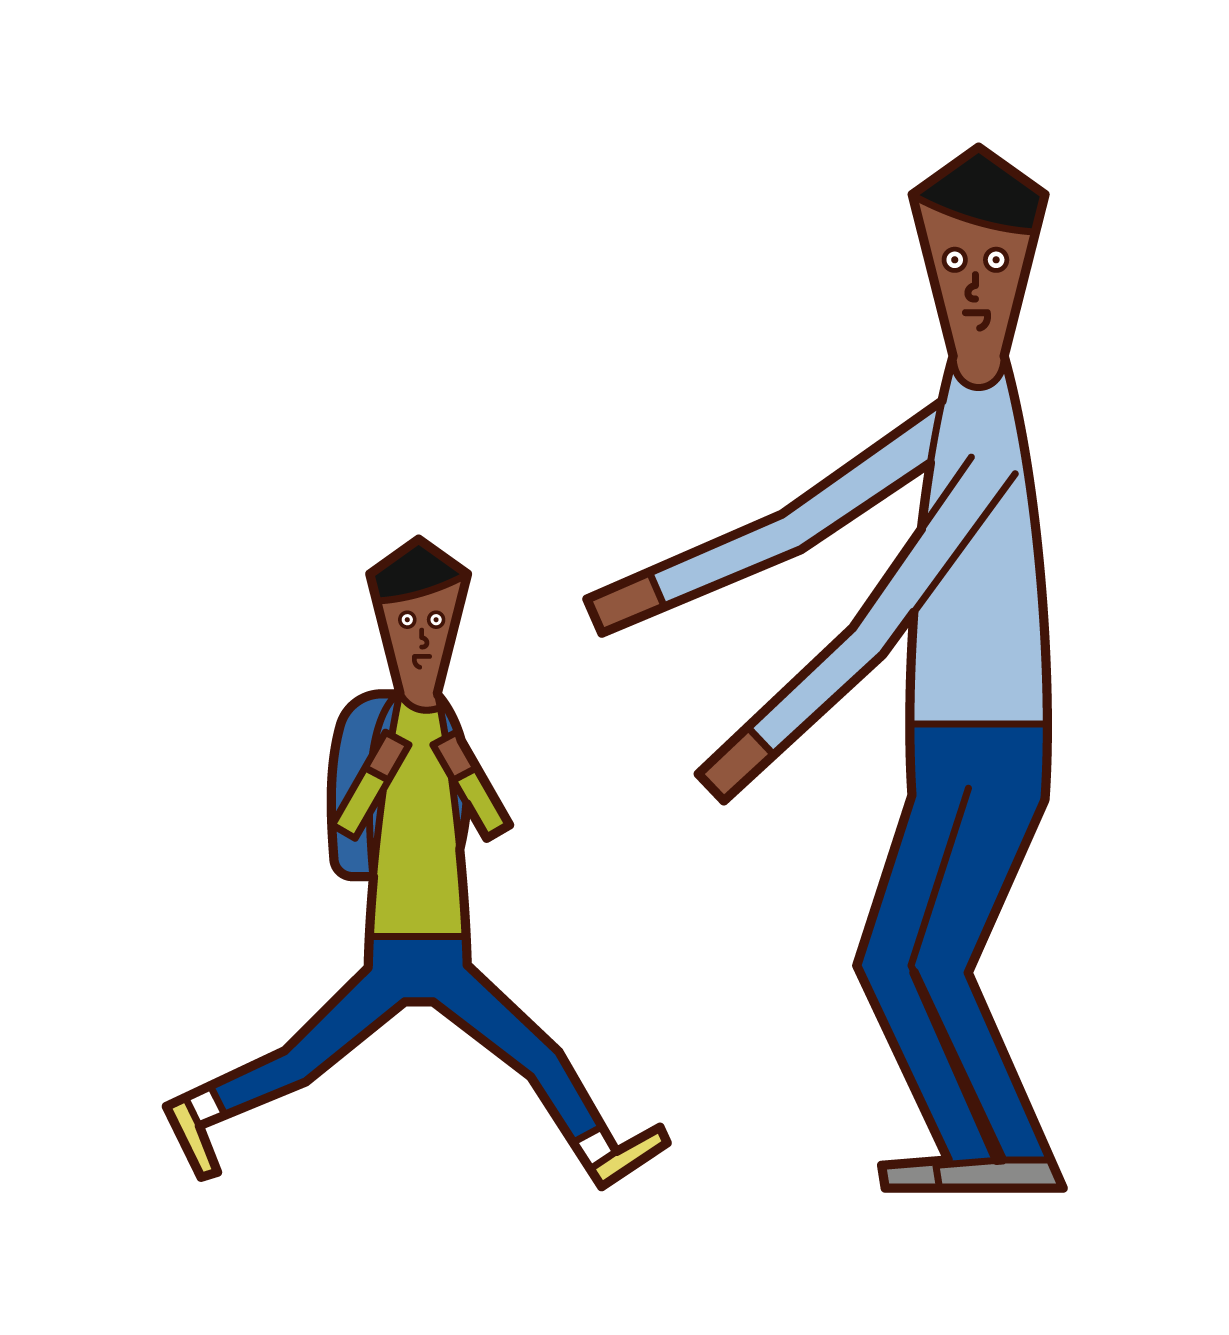 Illustration of a father greeting a child (son)